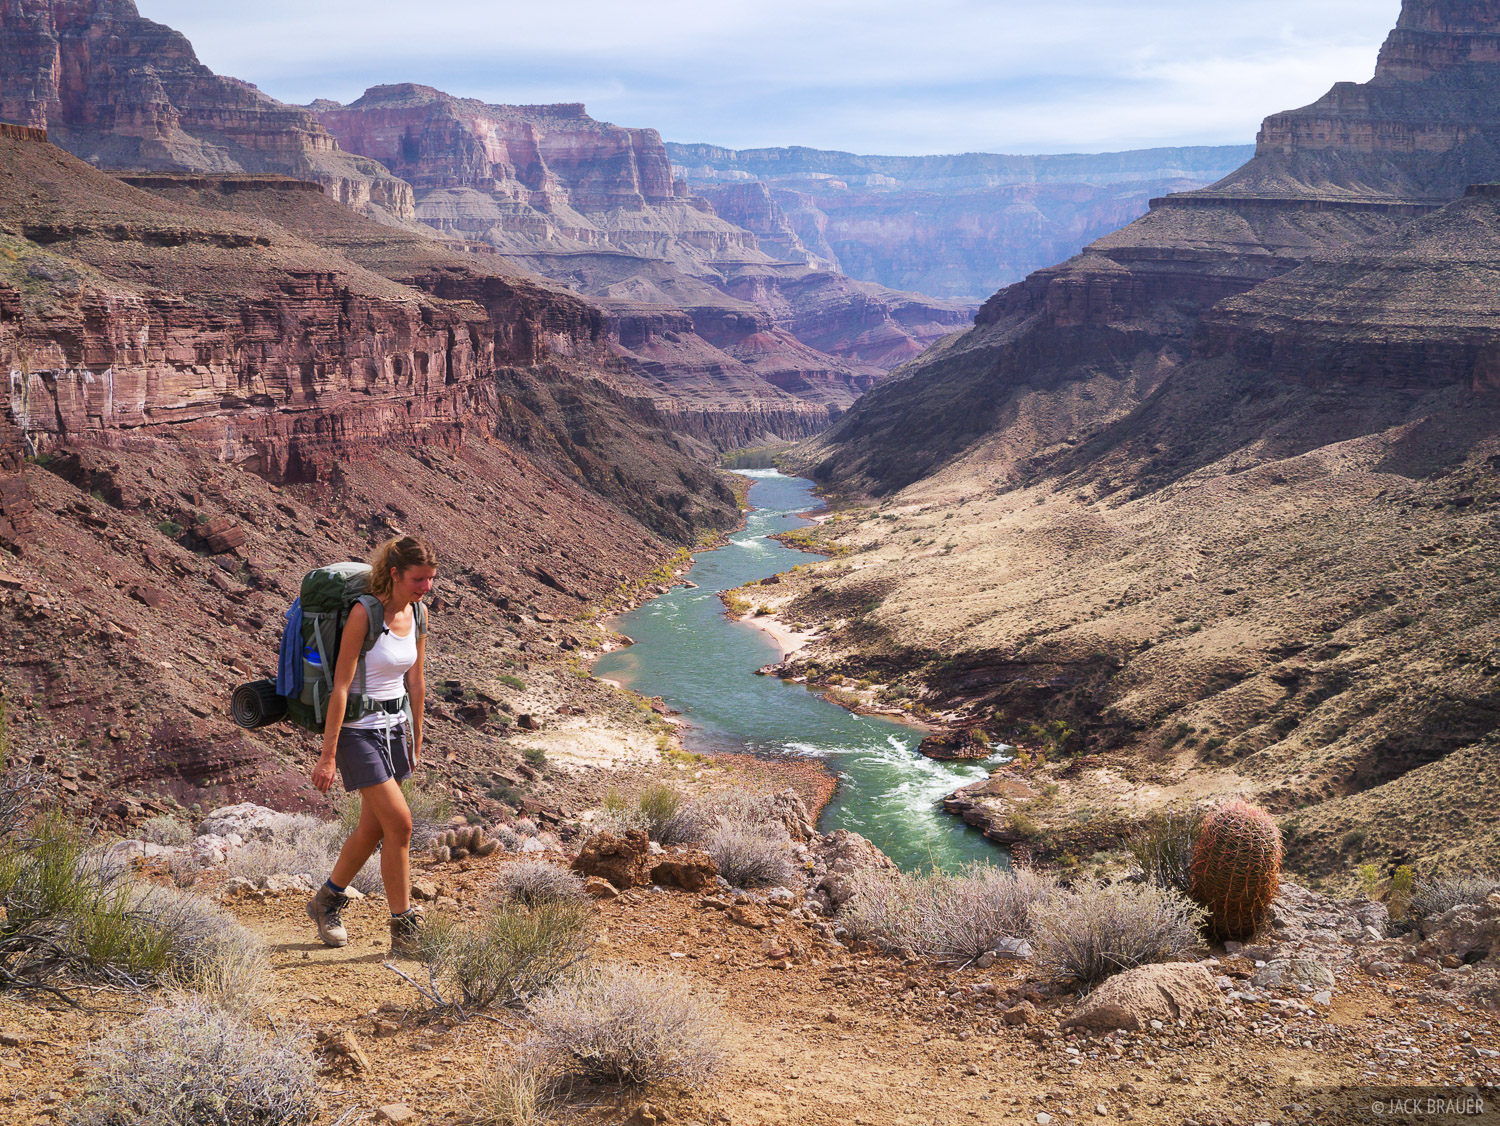 Hiking along the Colorado River.